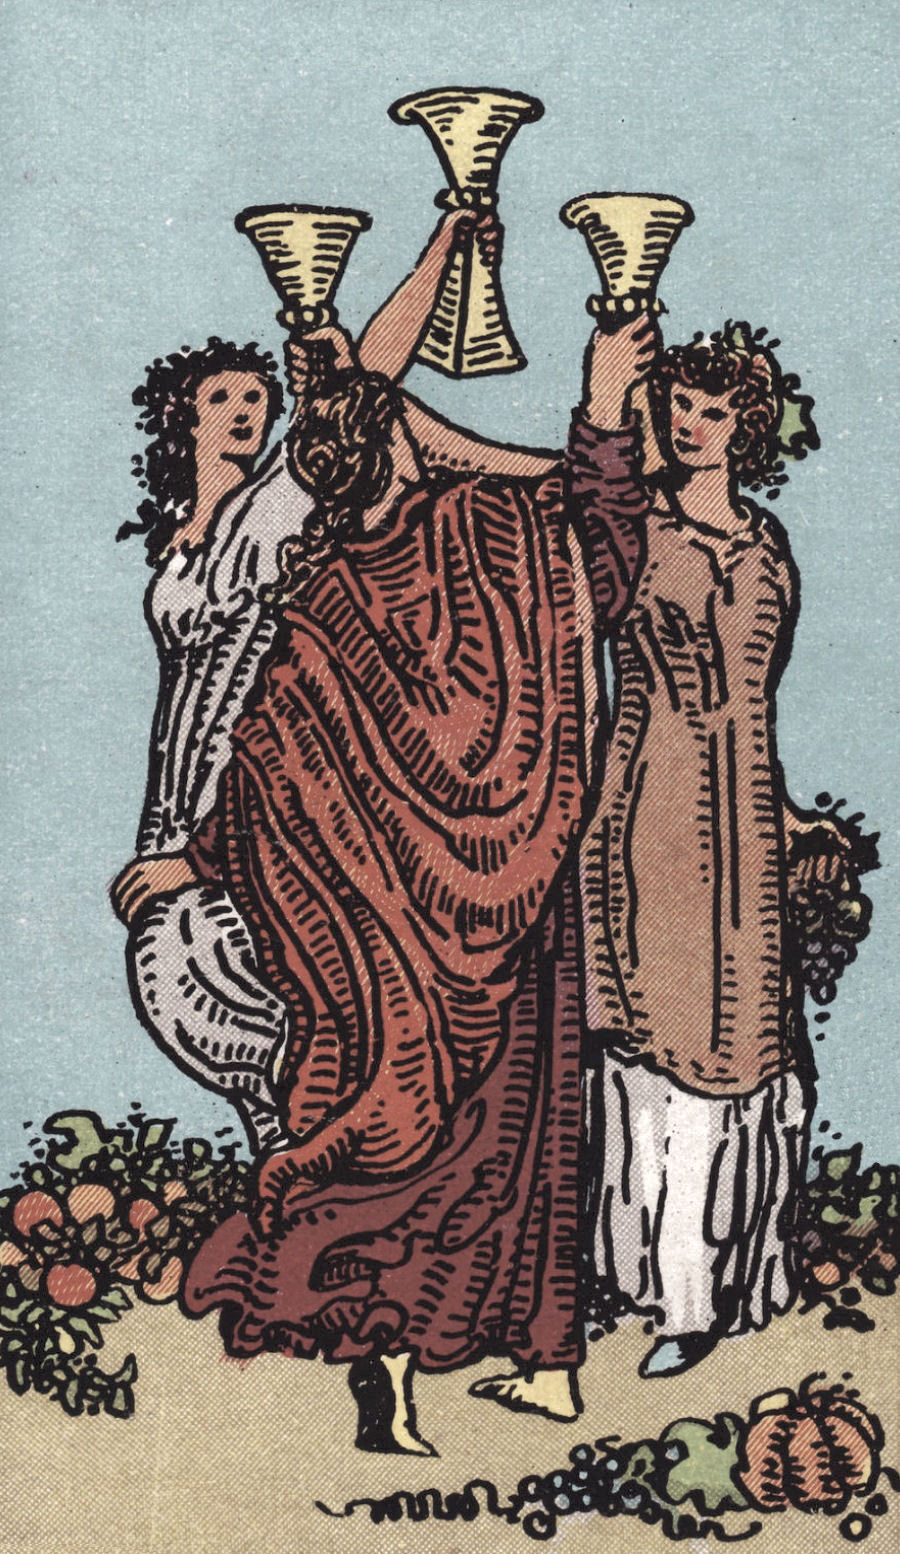 Rider Waite Smith Three of Cups Tarot Card Meaning